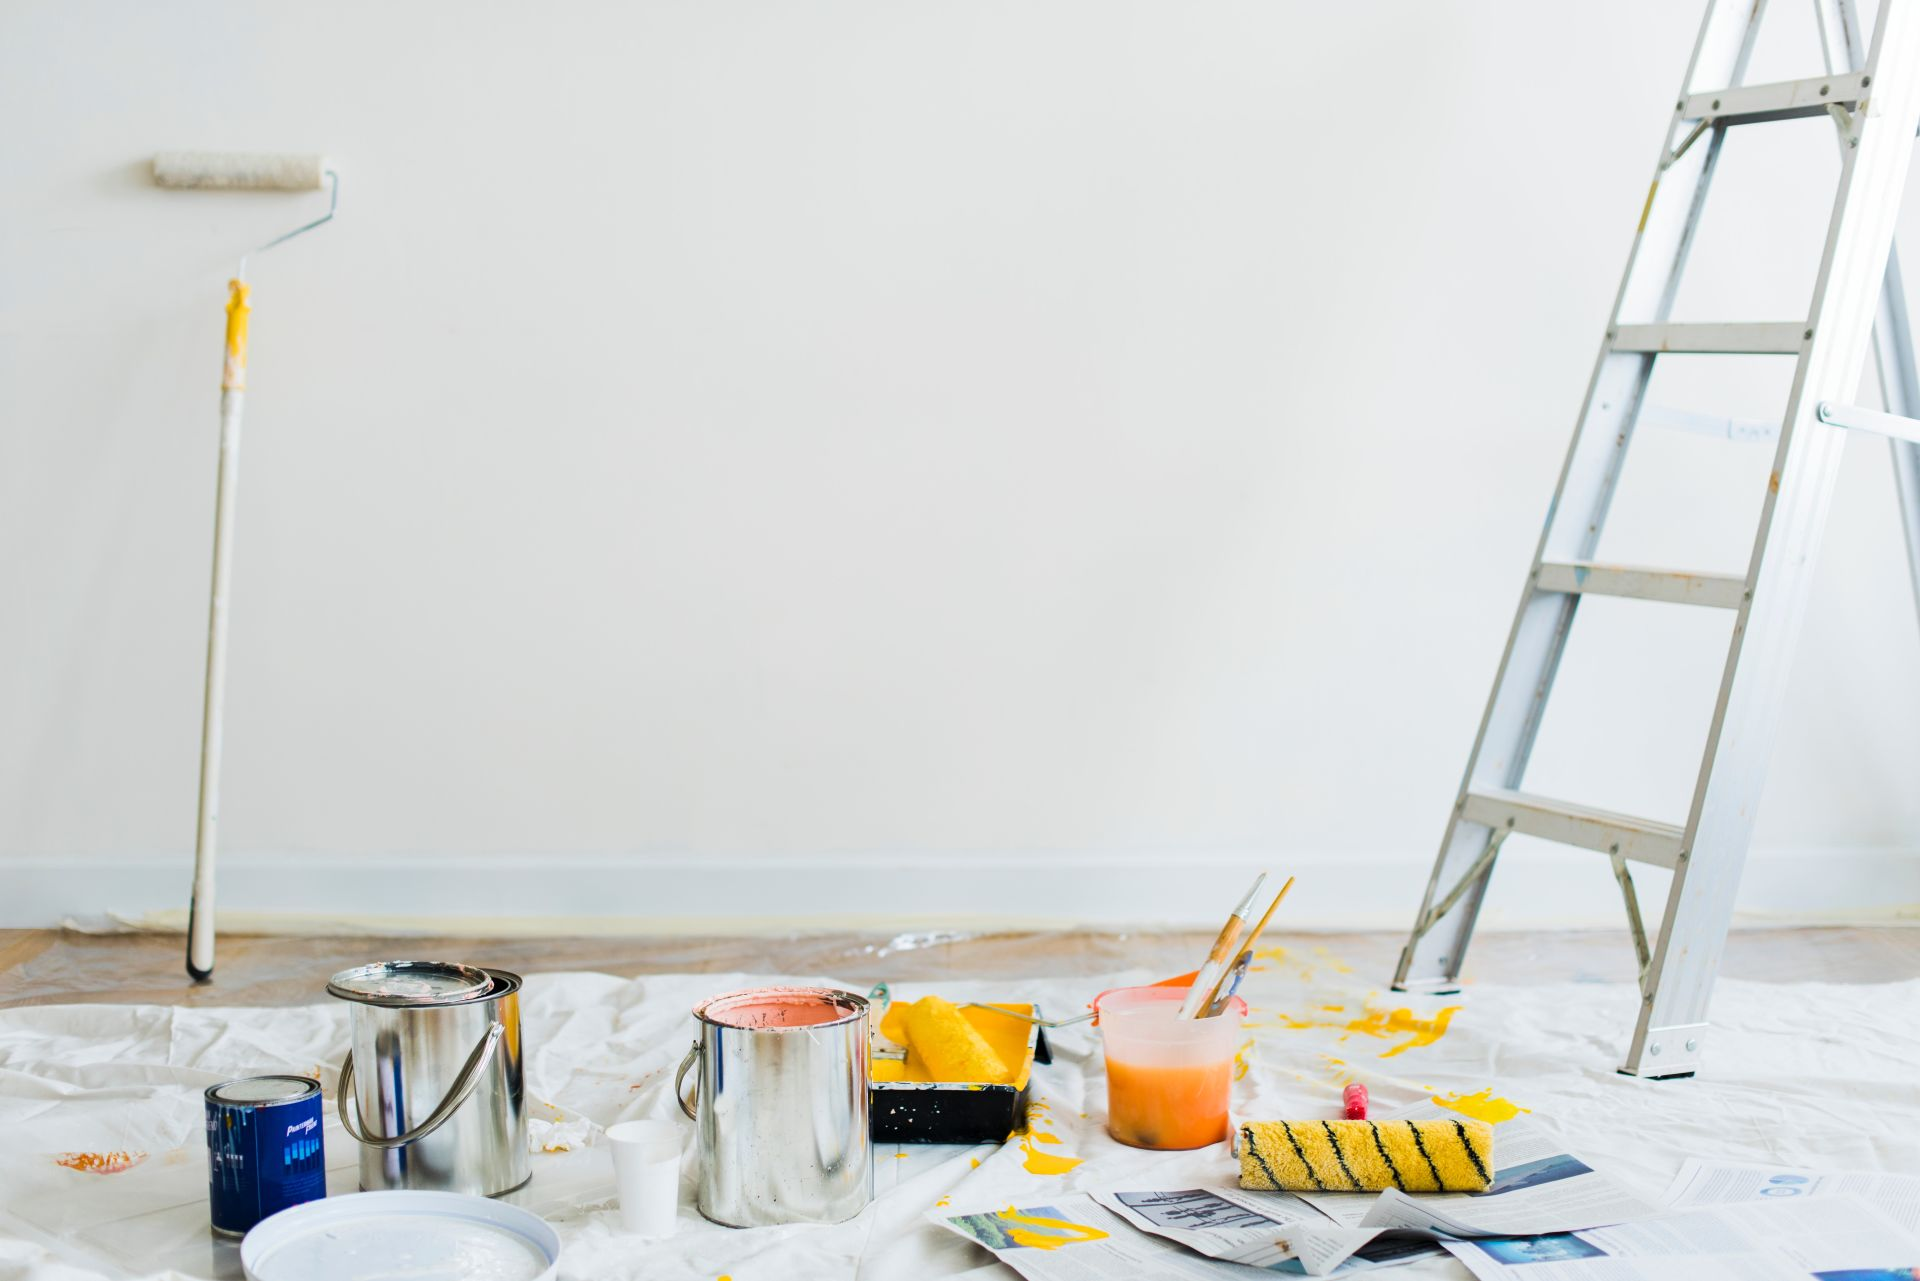 7 Great DIY Projects for Your Home this Winter